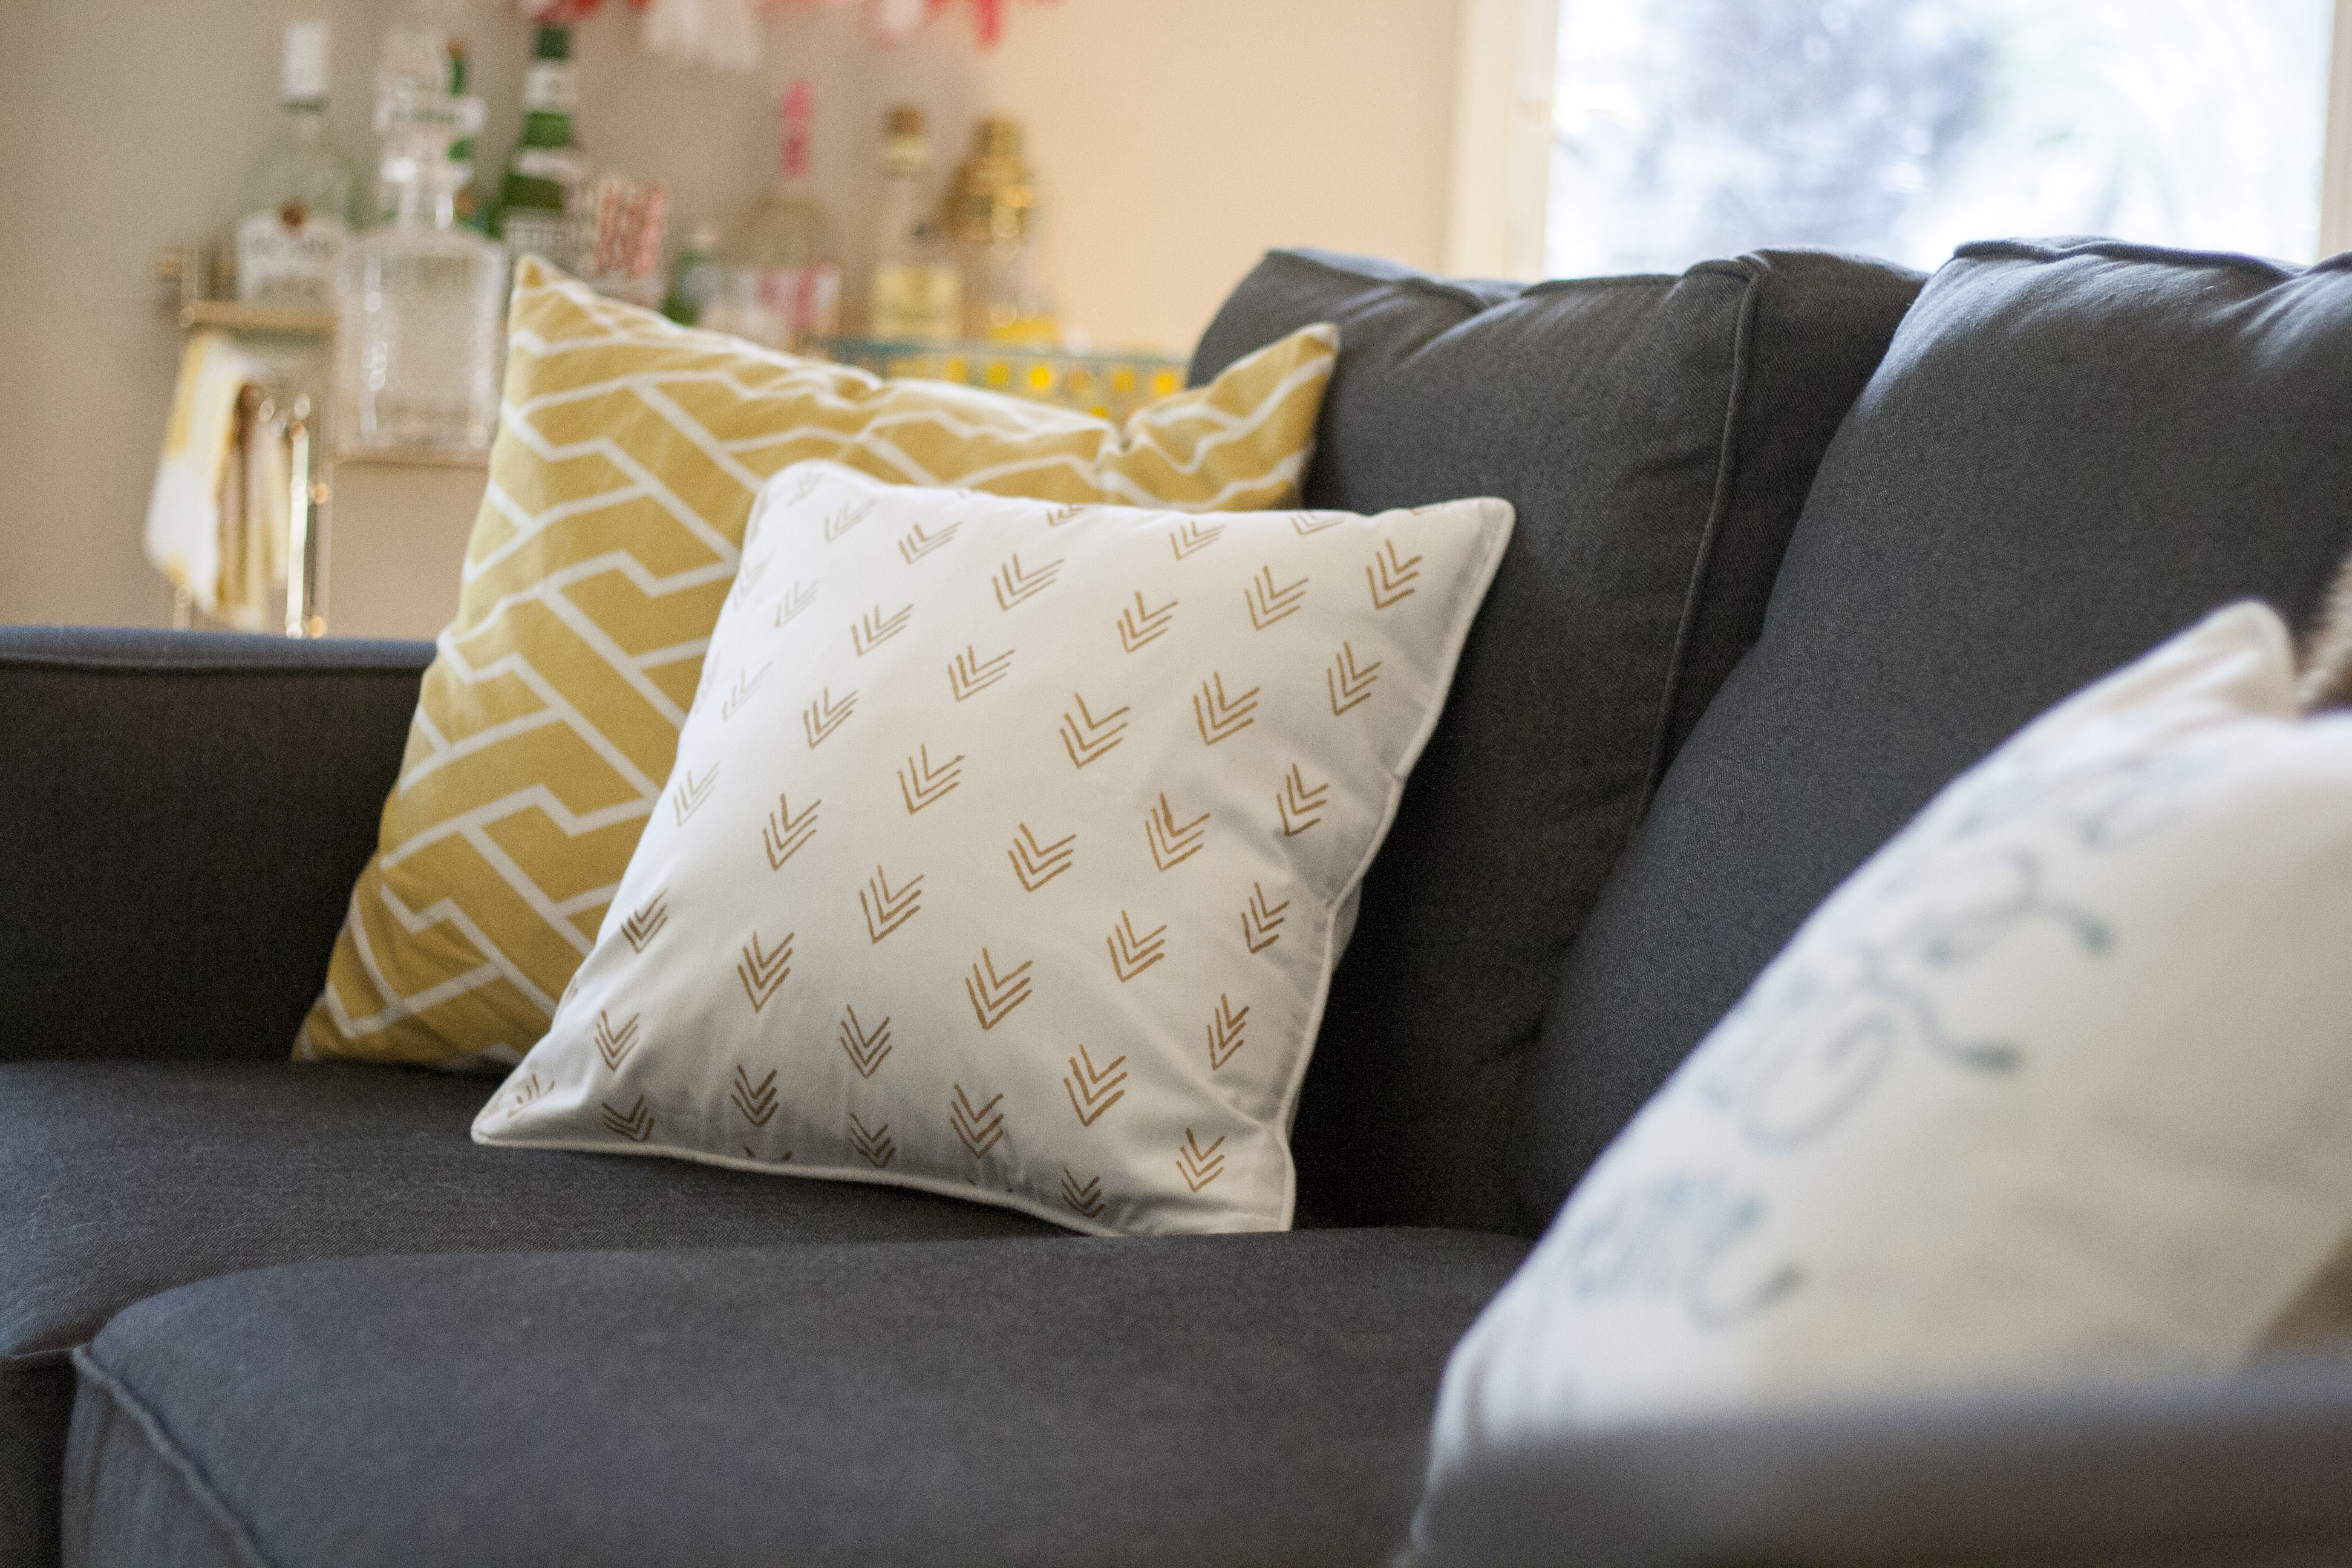 Diy Painted Pillow Case: Easy as D I Y  Painted Pillow Cases   Dream Green DIY,